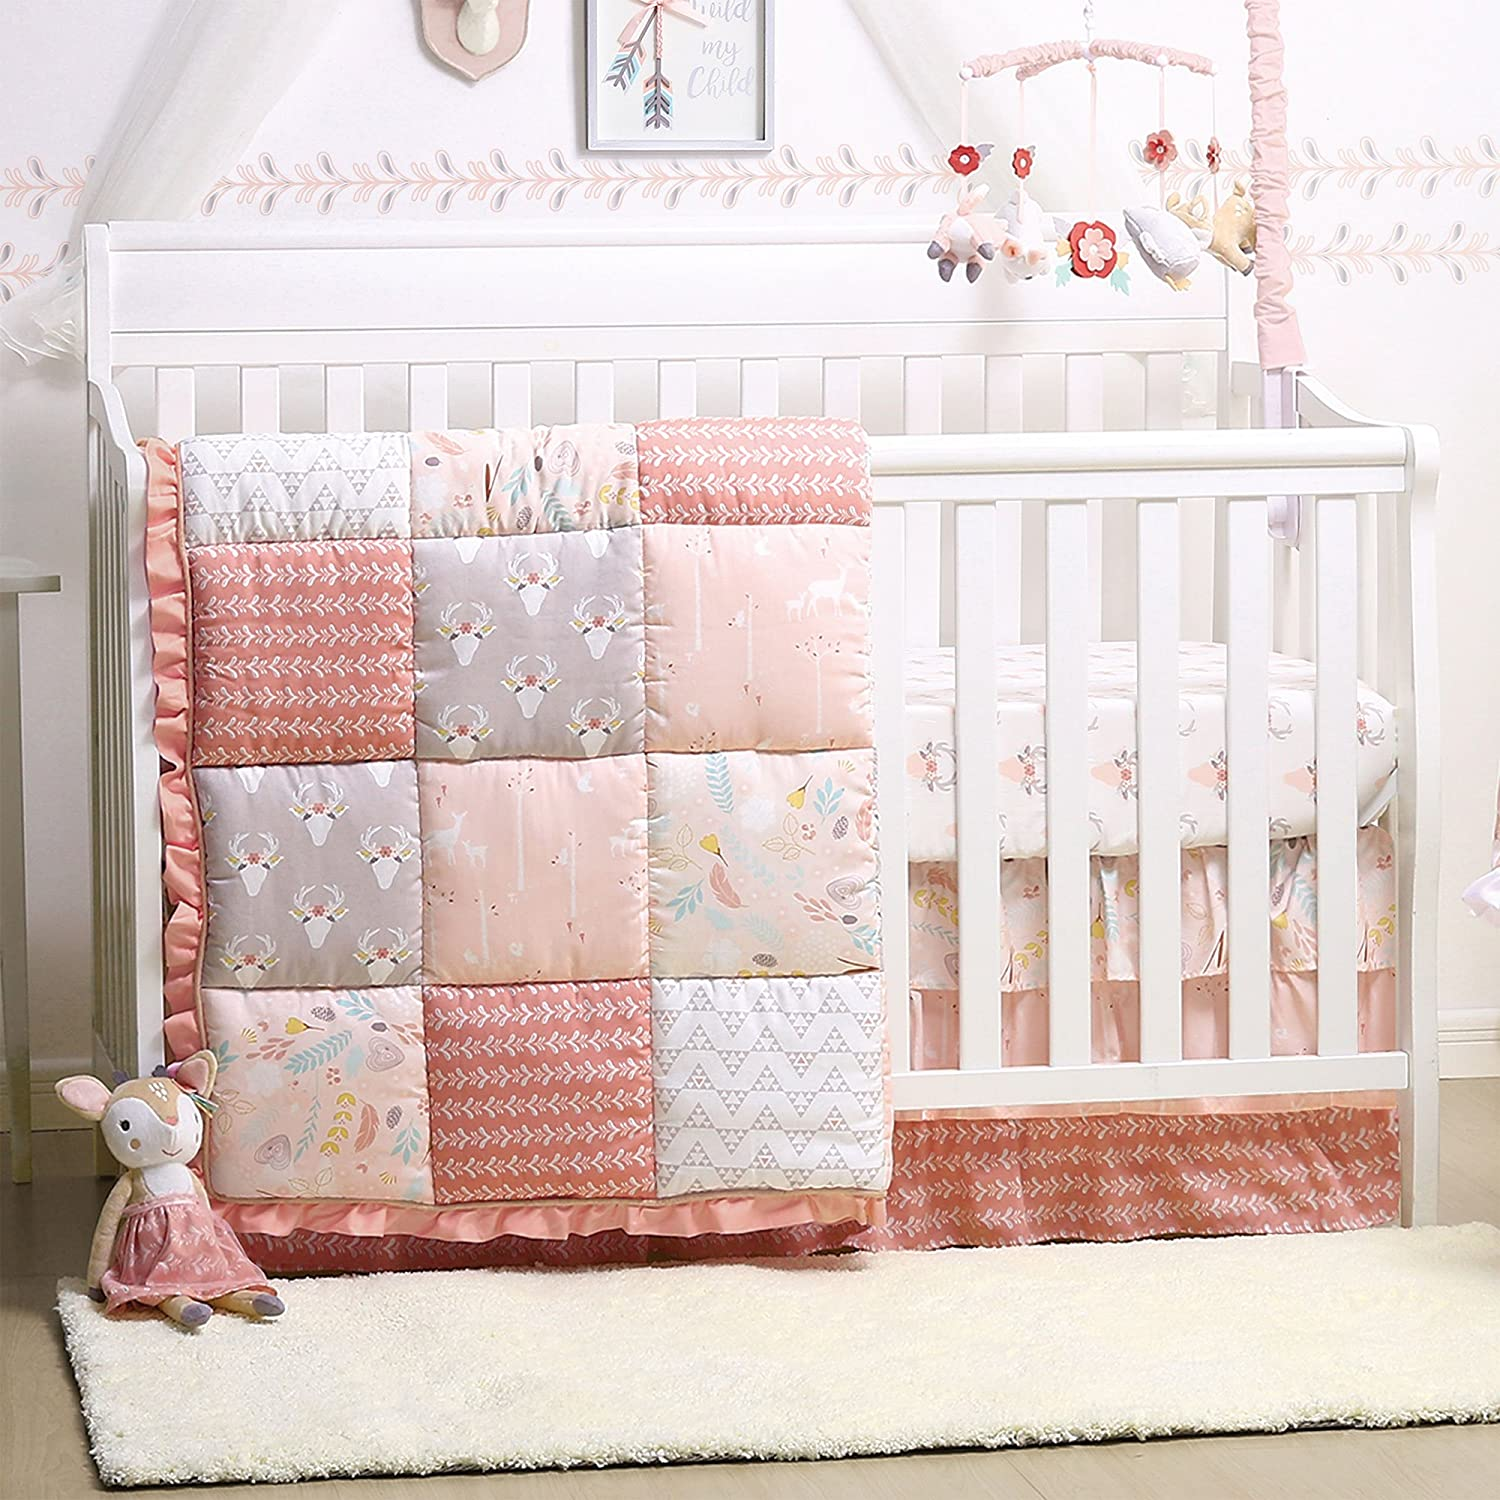 Woodland Whimsy 4-Piece Baby Girl Forest Animal Theme Crib Bedding Set Farallon Brands BSPS-WWH